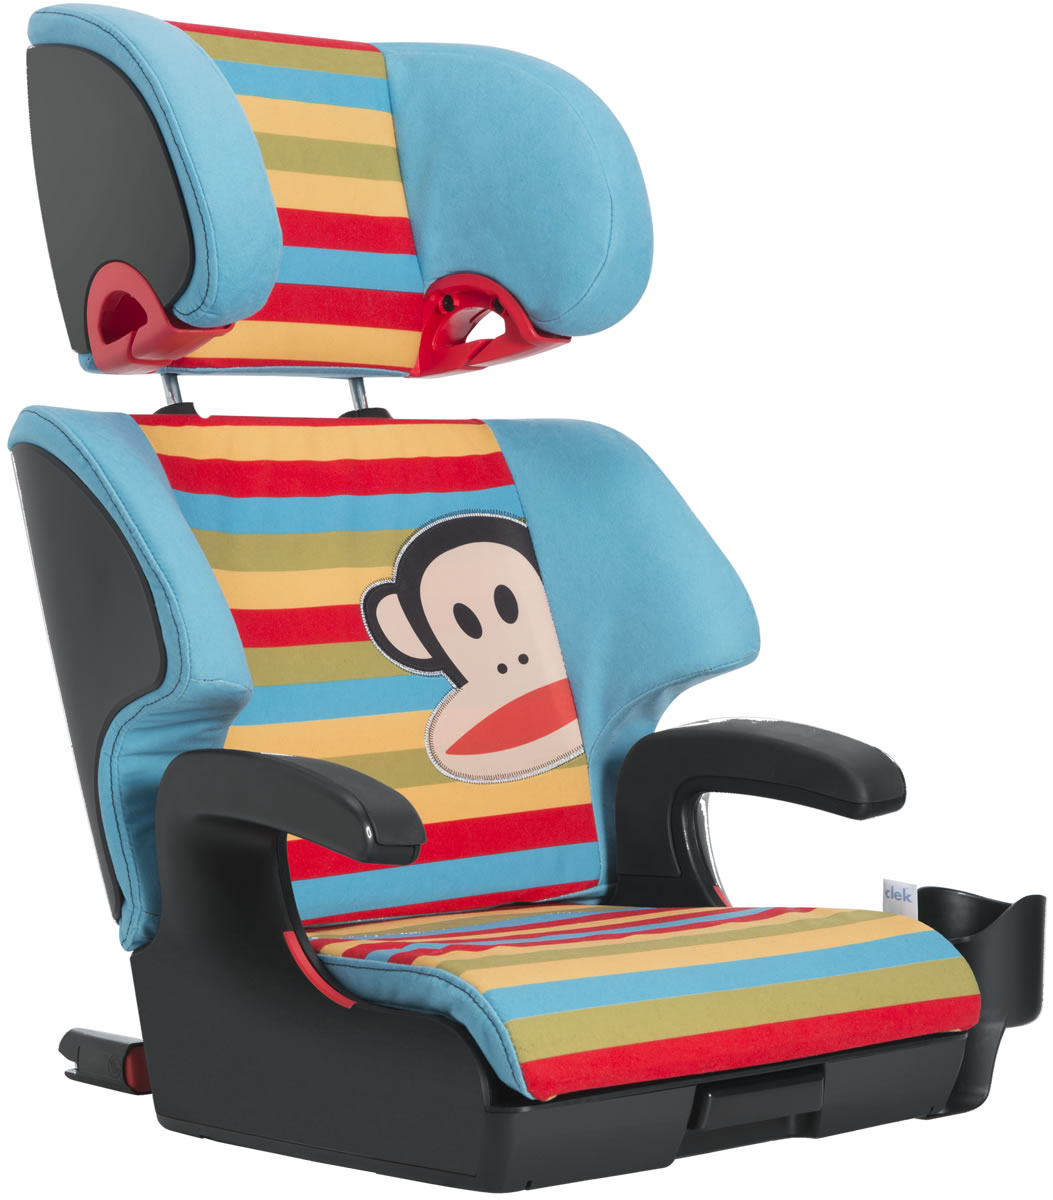 clek paul frank special edition olli booster car seat scurvy camo find it at shopwiki. Black Bedroom Furniture Sets. Home Design Ideas